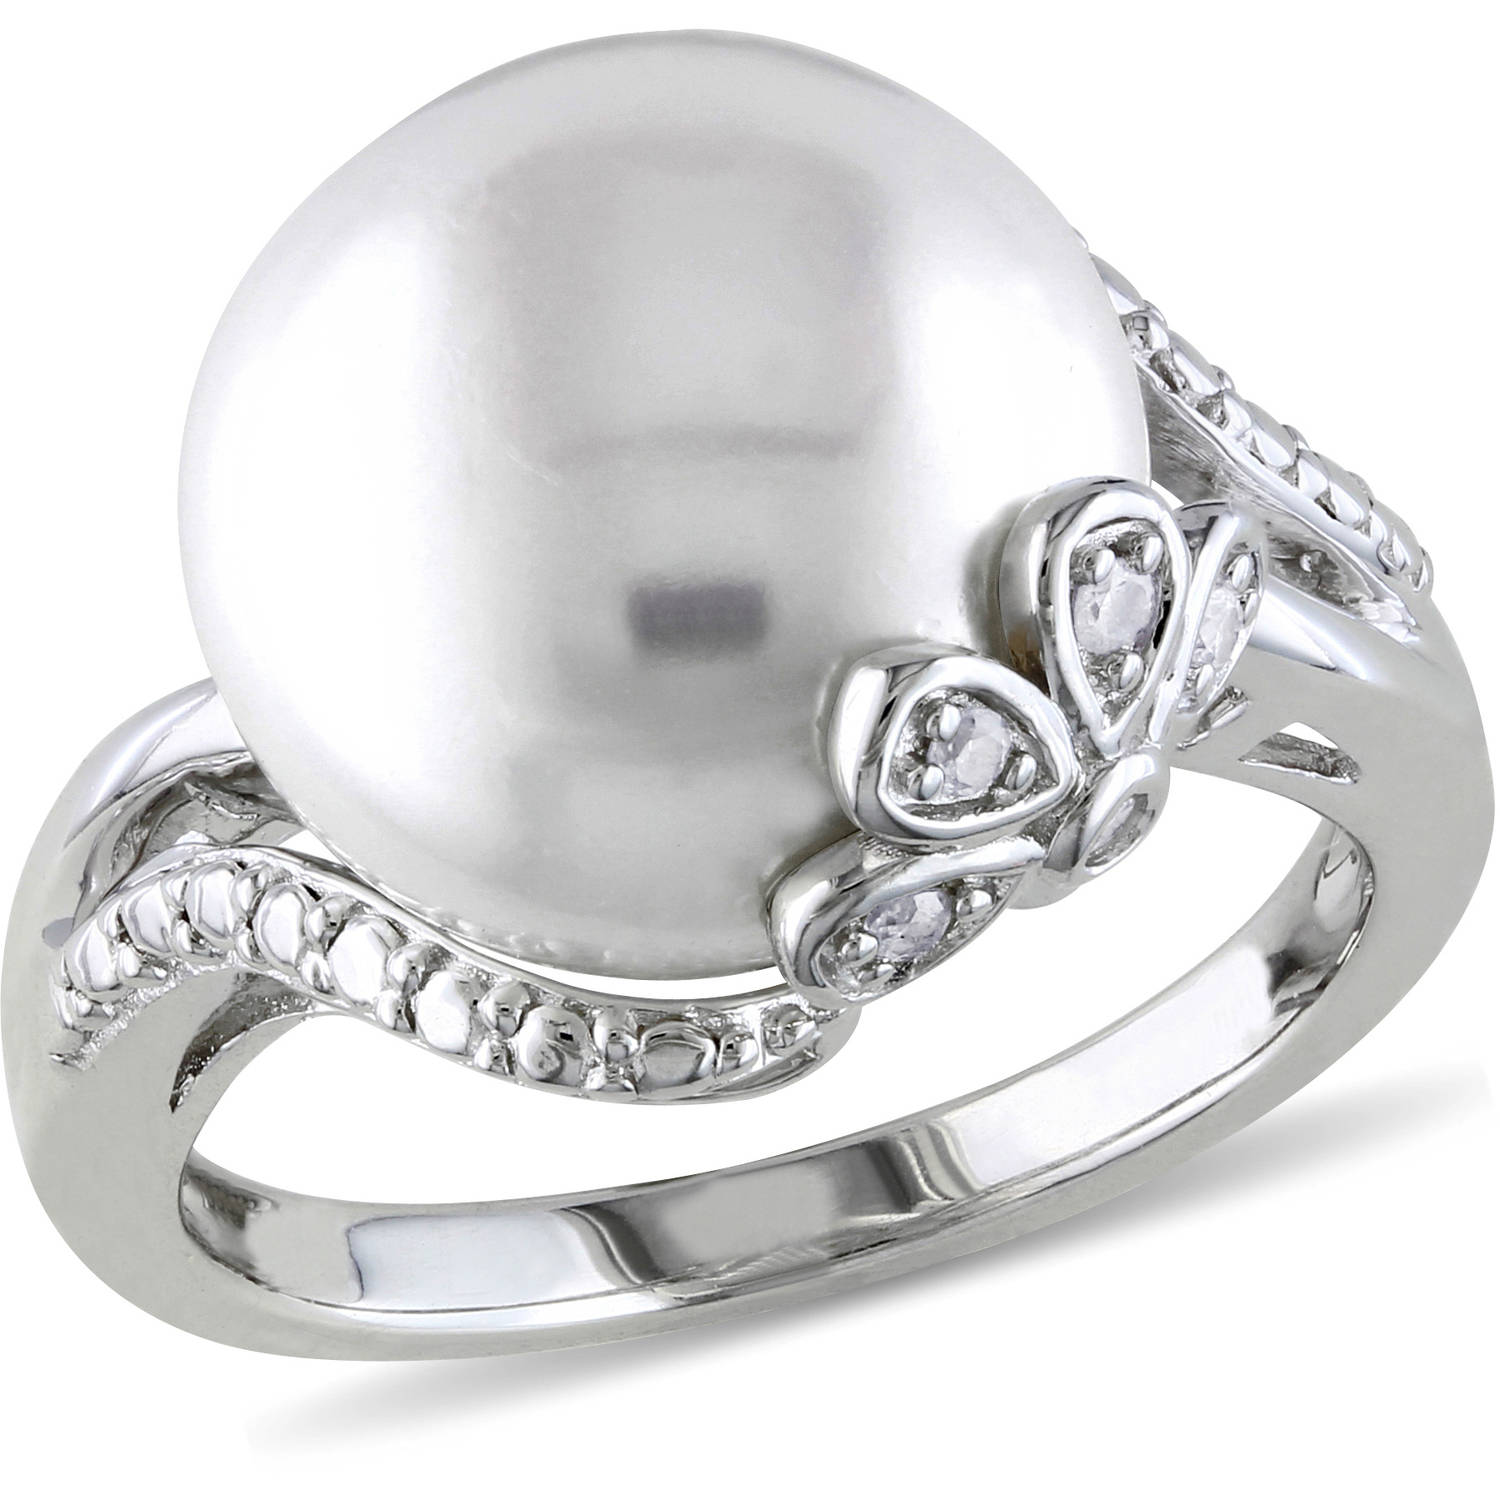 Miabella 12-12.5mm White Cultured Freshwater Pearl and Diamond-Accent Sterling Silver Cocktail Ring